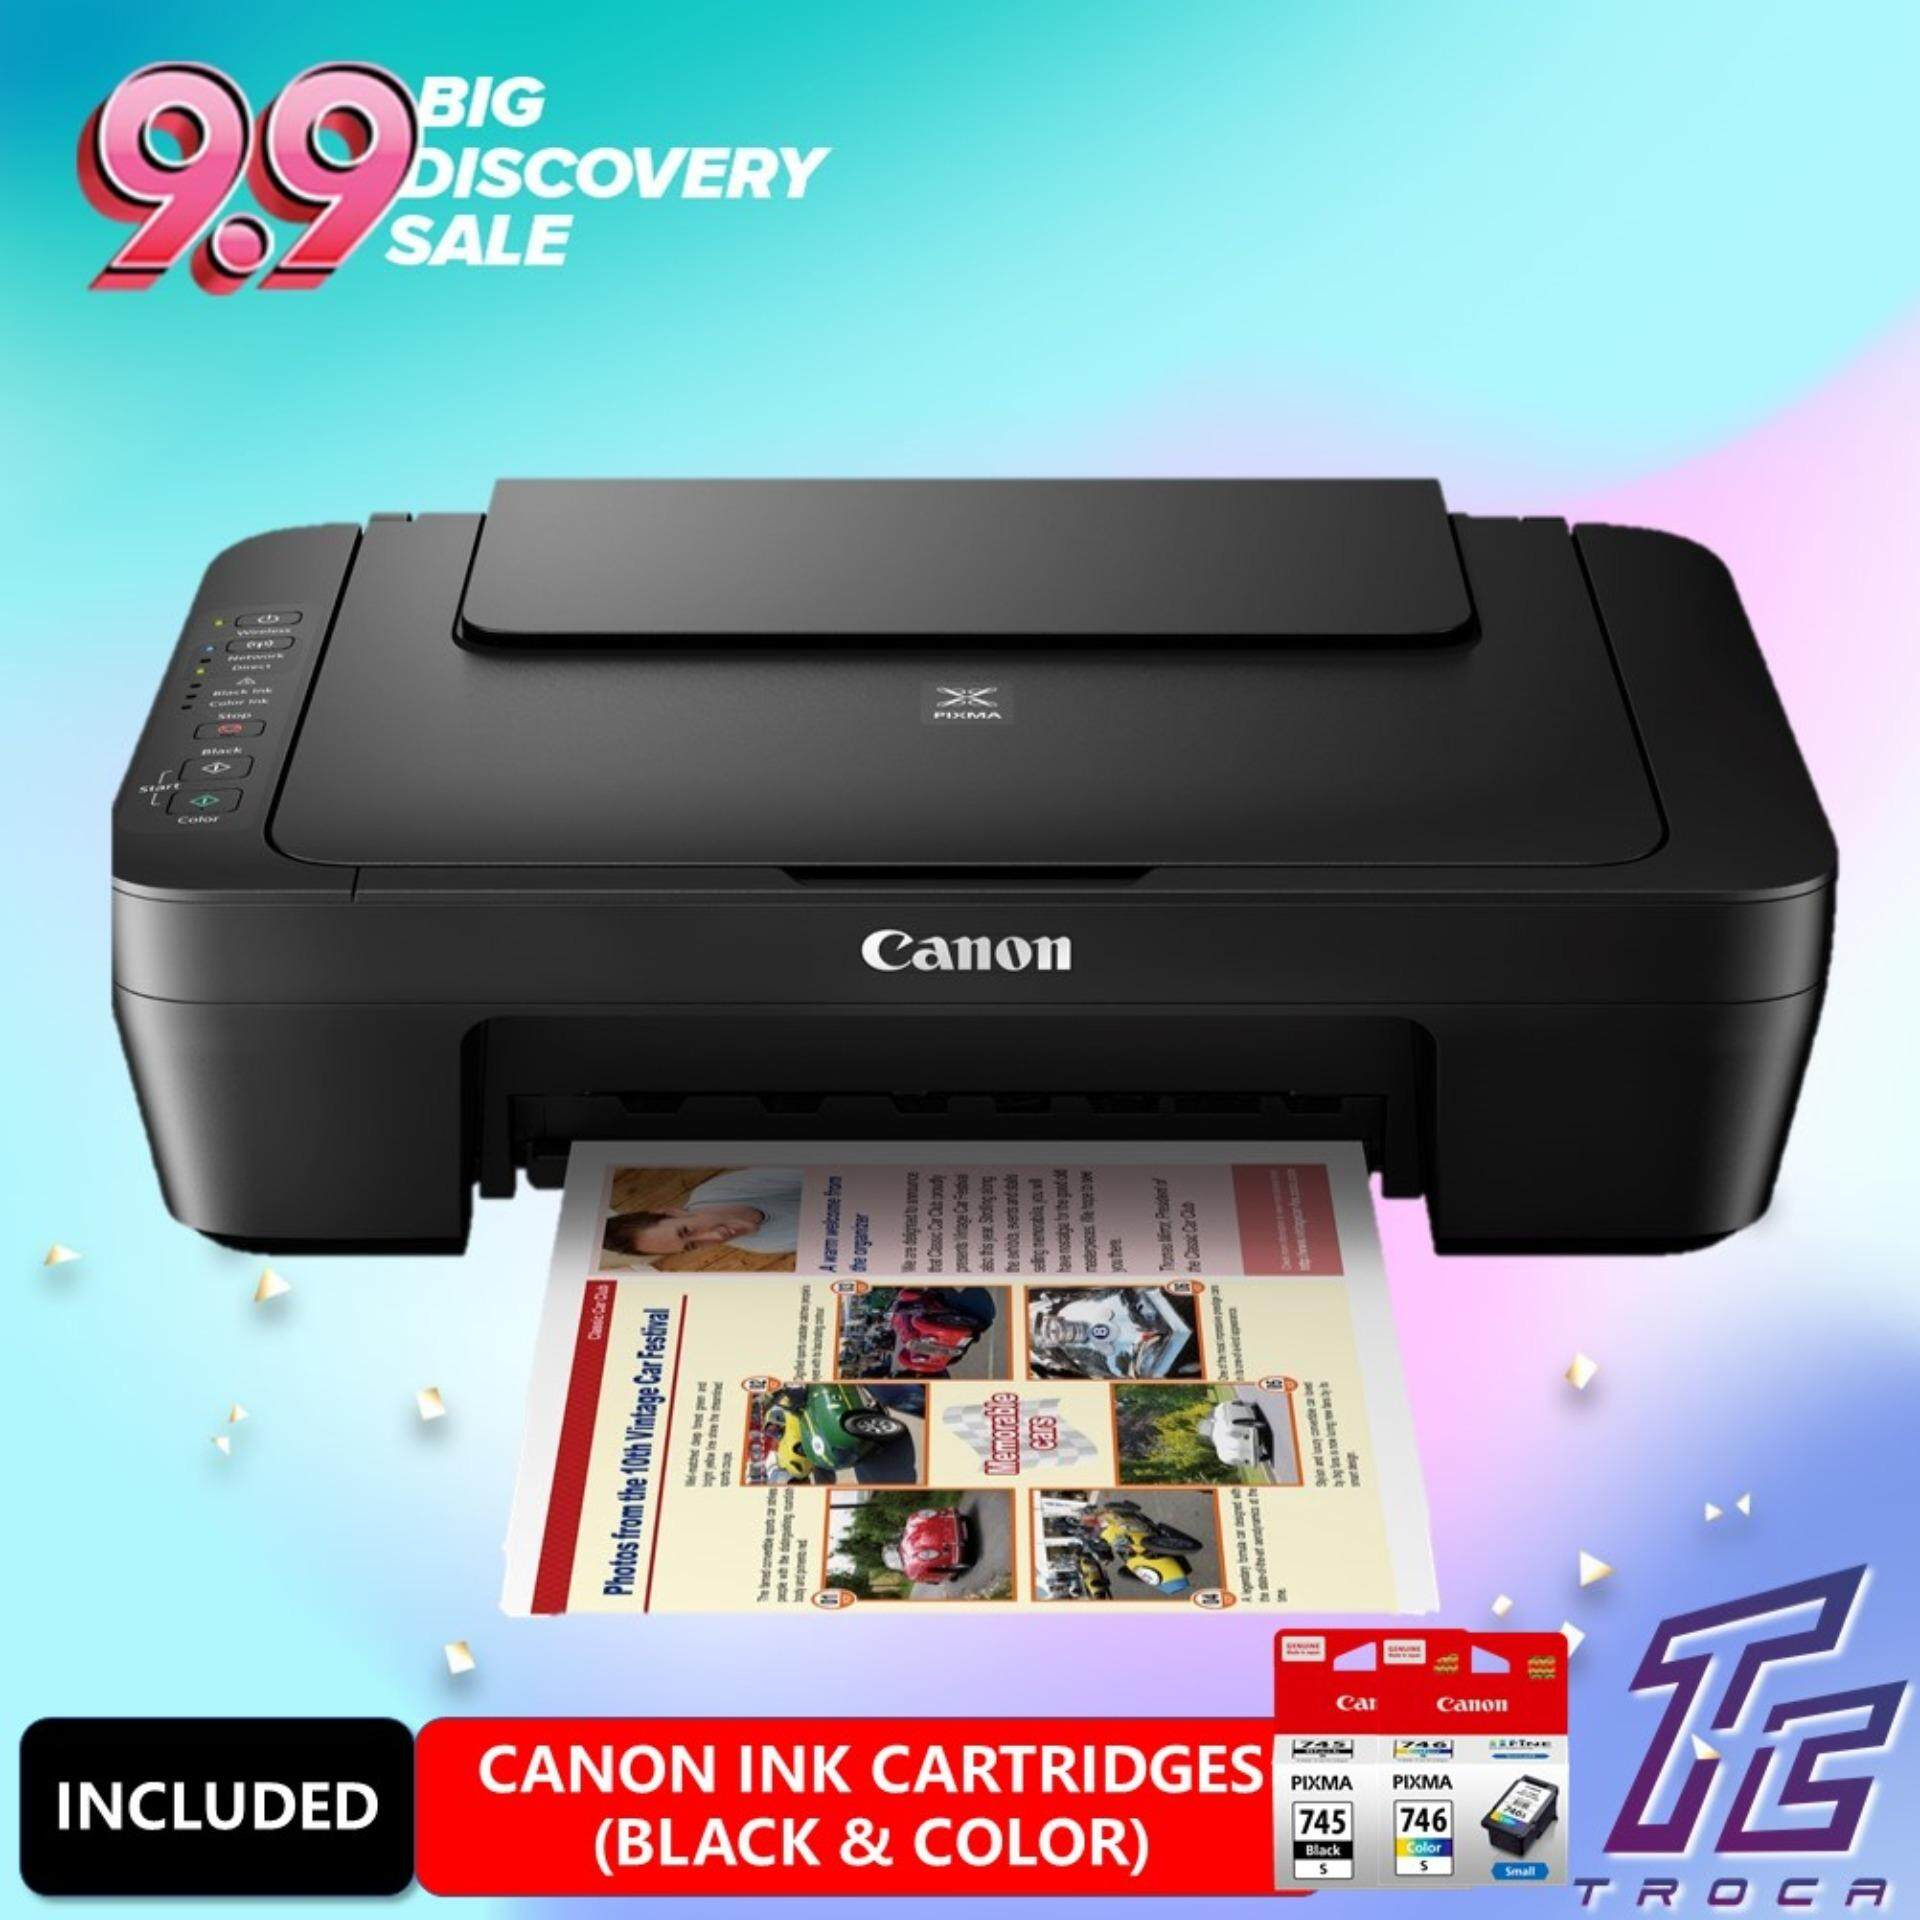 Canon Pixma MG3070S Low Cost Cartridges All-In-One Low Cost Home Use Colour  Printer Wireless Printer (Print/Scan/Copy)